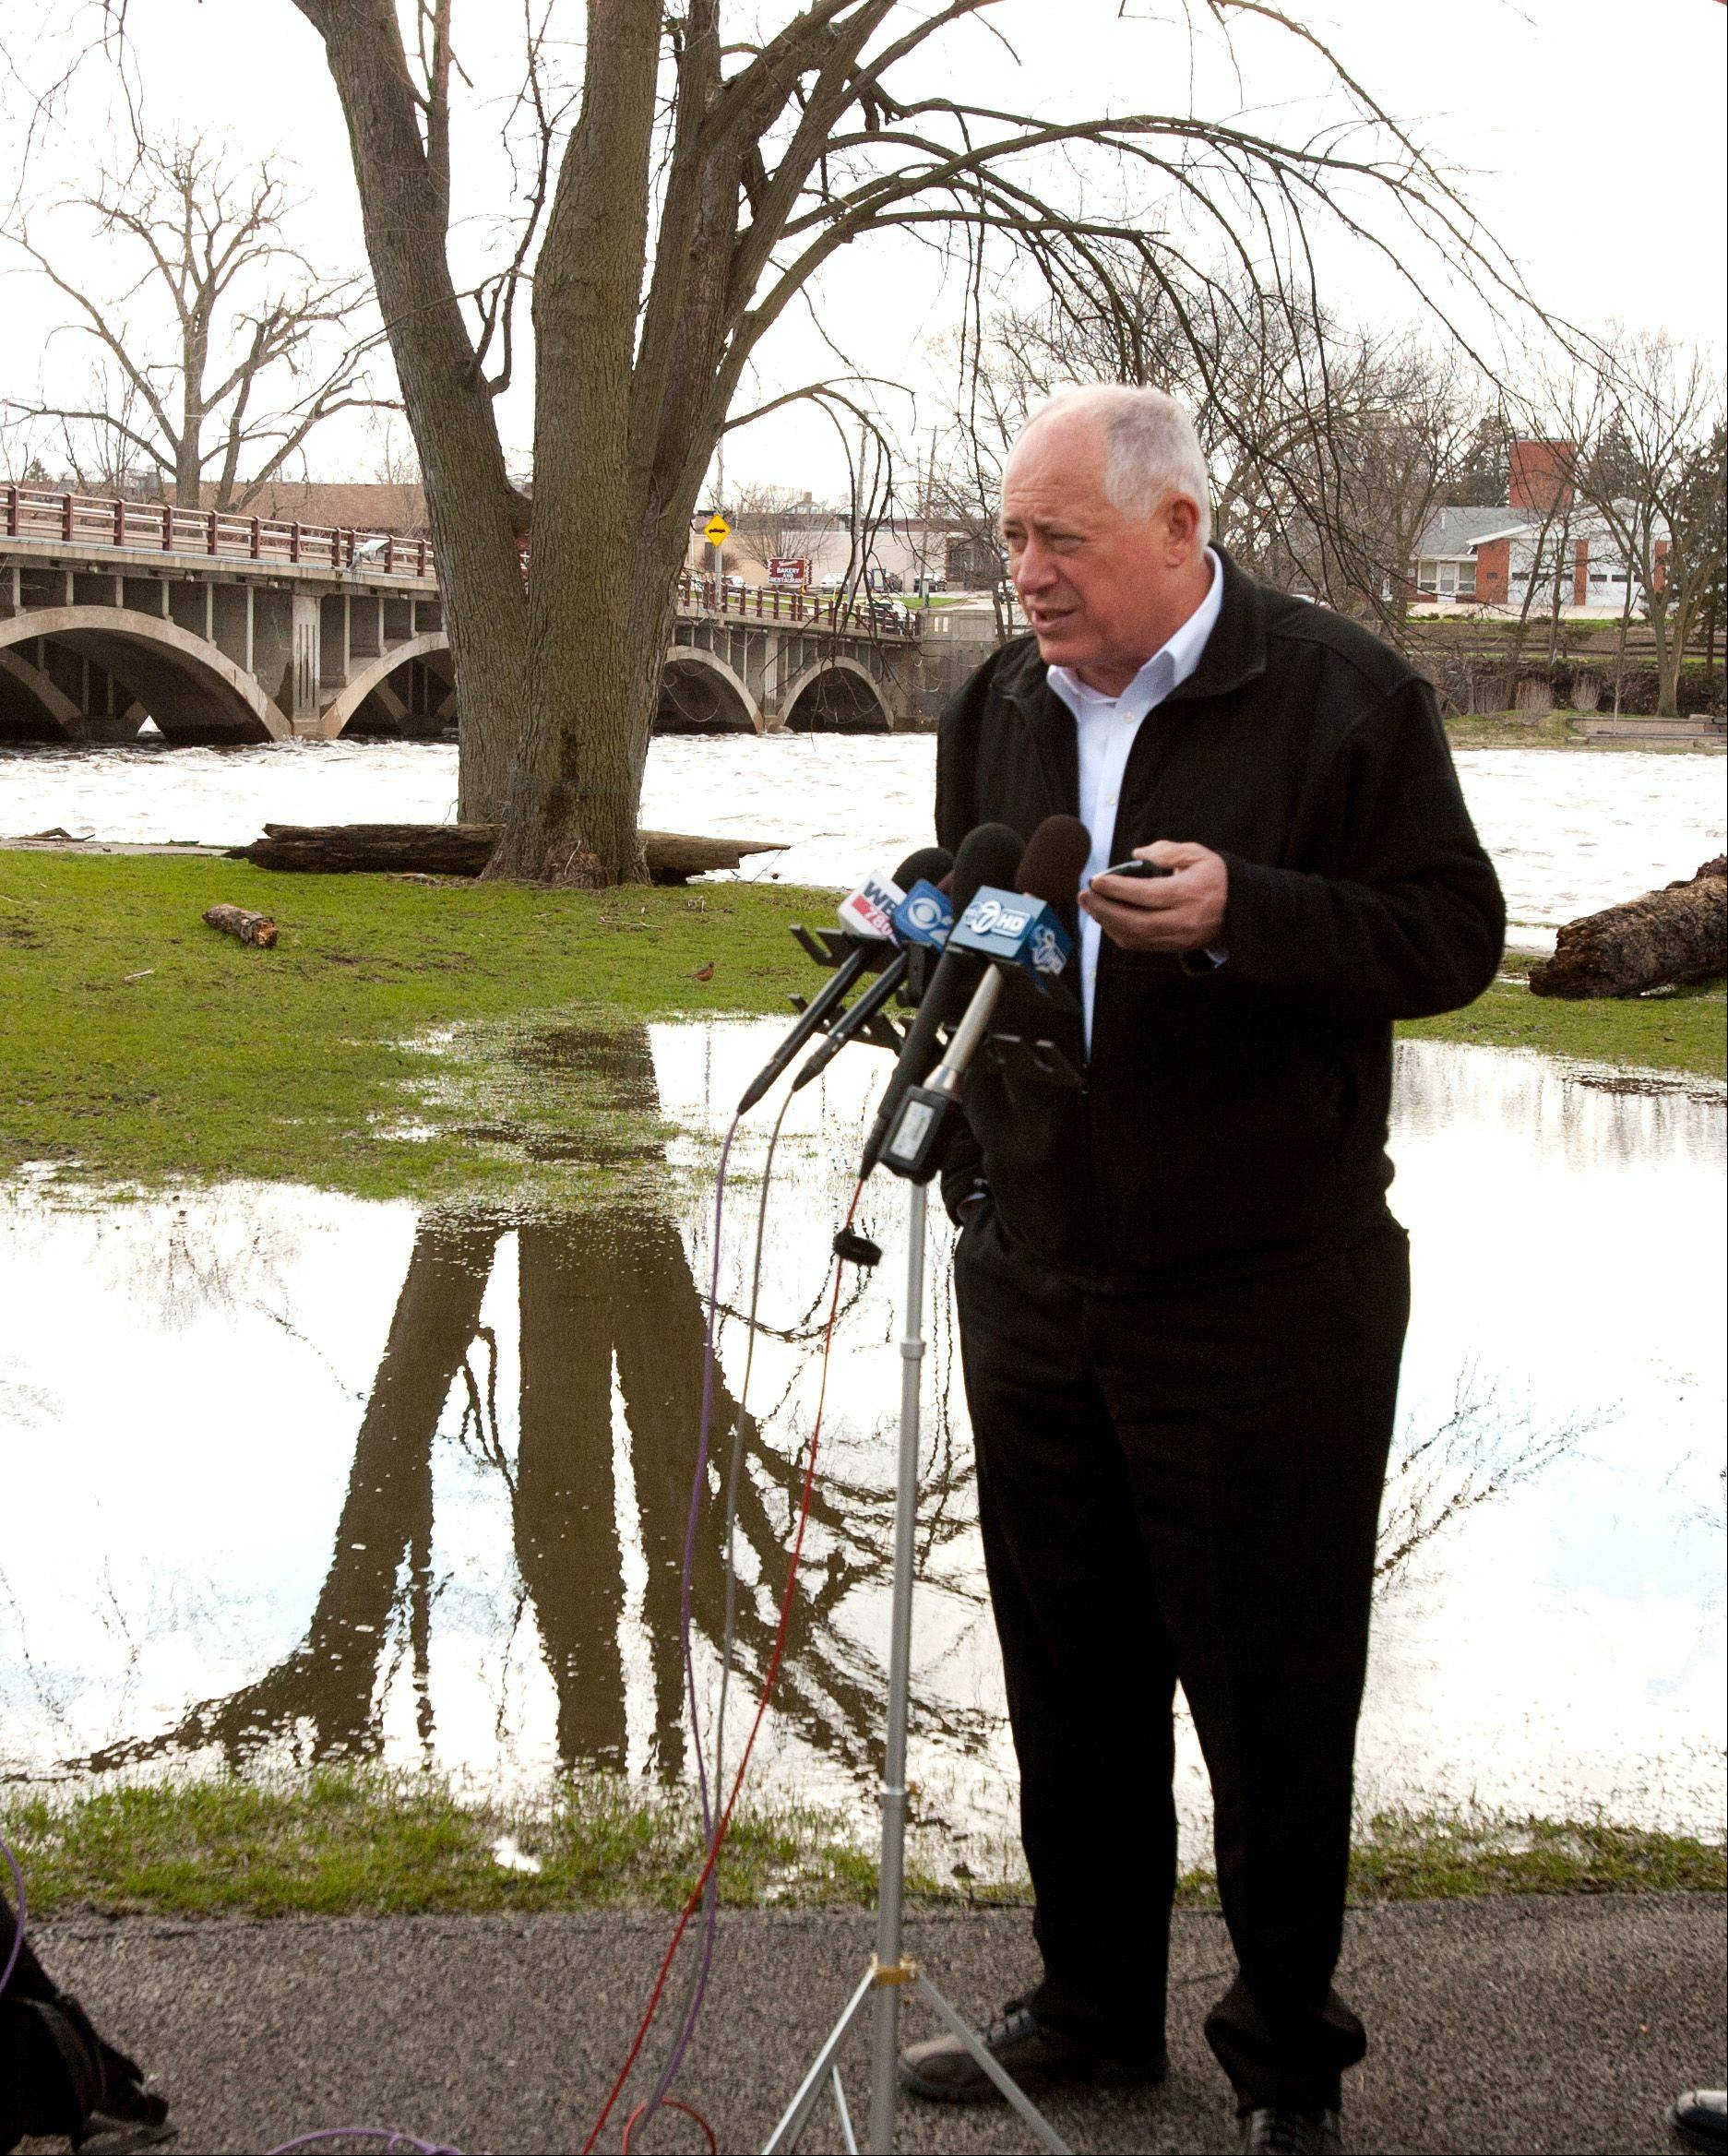 Gov. Pat Quinn addresses flooding concerns throughout the state, during a news conference Saturday along the Fox River in North Aurora.